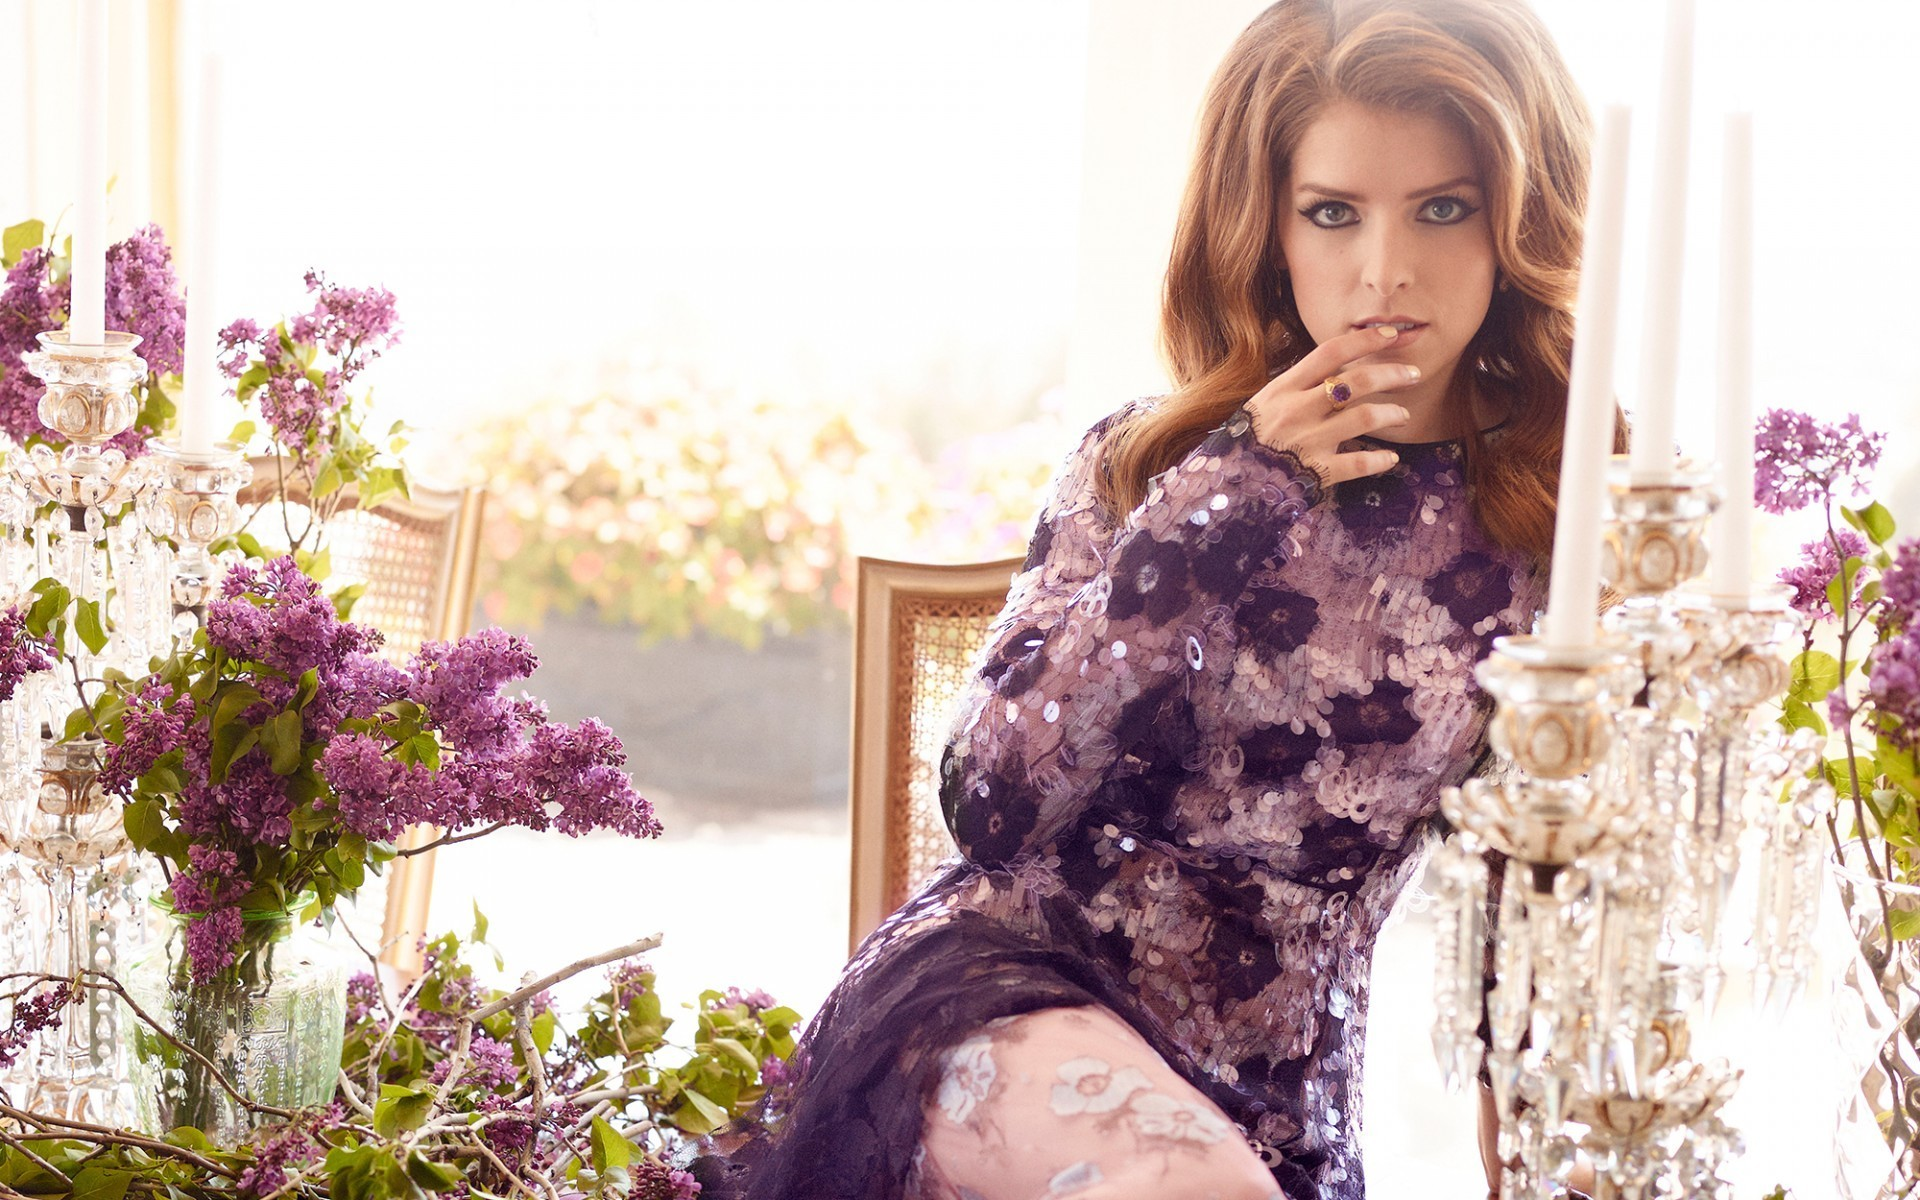 Anna-Kendrick-iPhone-1920%C3%971080-Anna-Kendrick-Adorable-Wallp-wallpaper-wp3602610